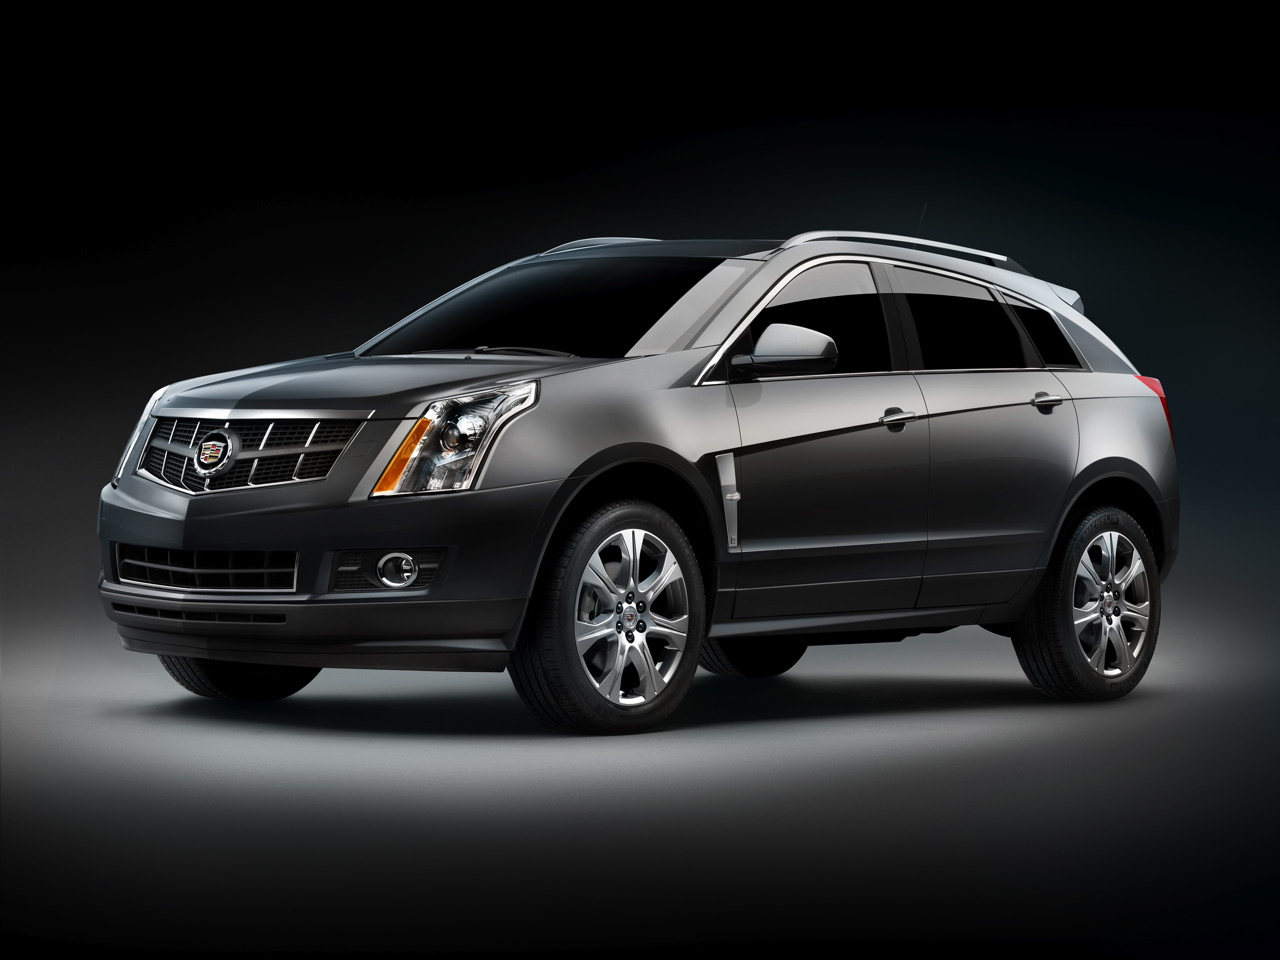 times daily suv autos cadillac solochek back lyra business at ep escalade news some models a drivers the look